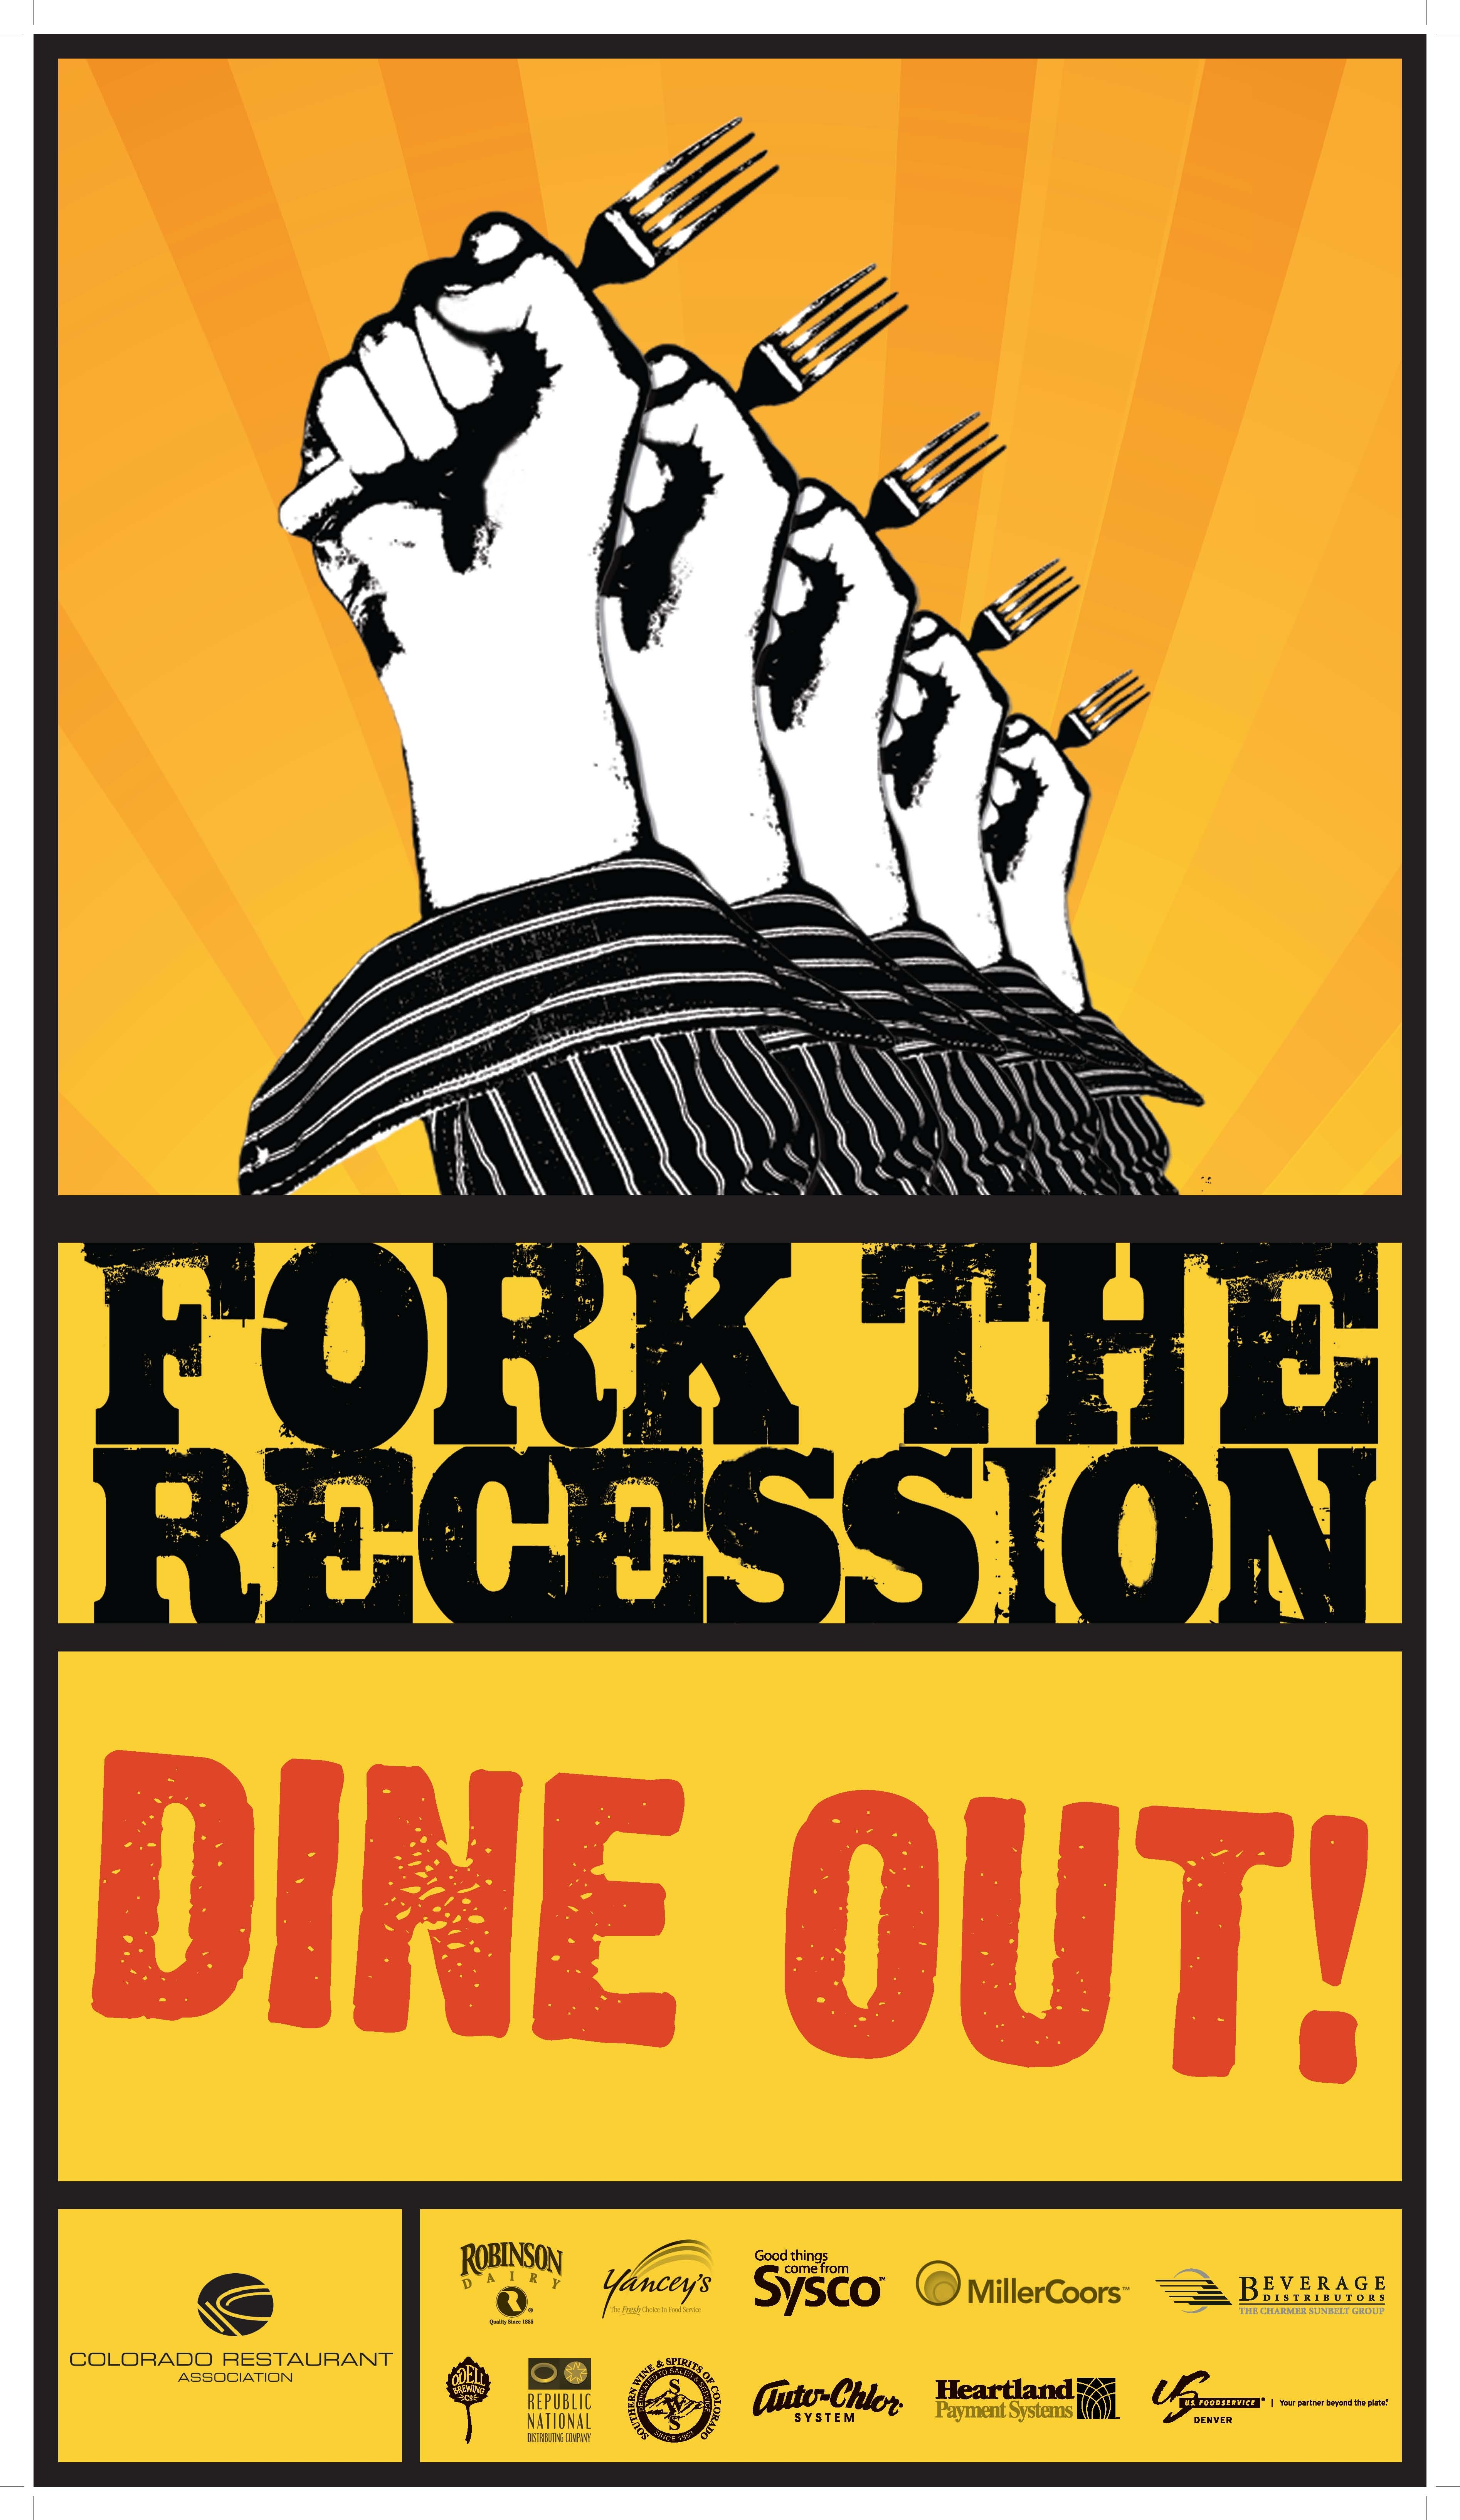 Fork the Recession